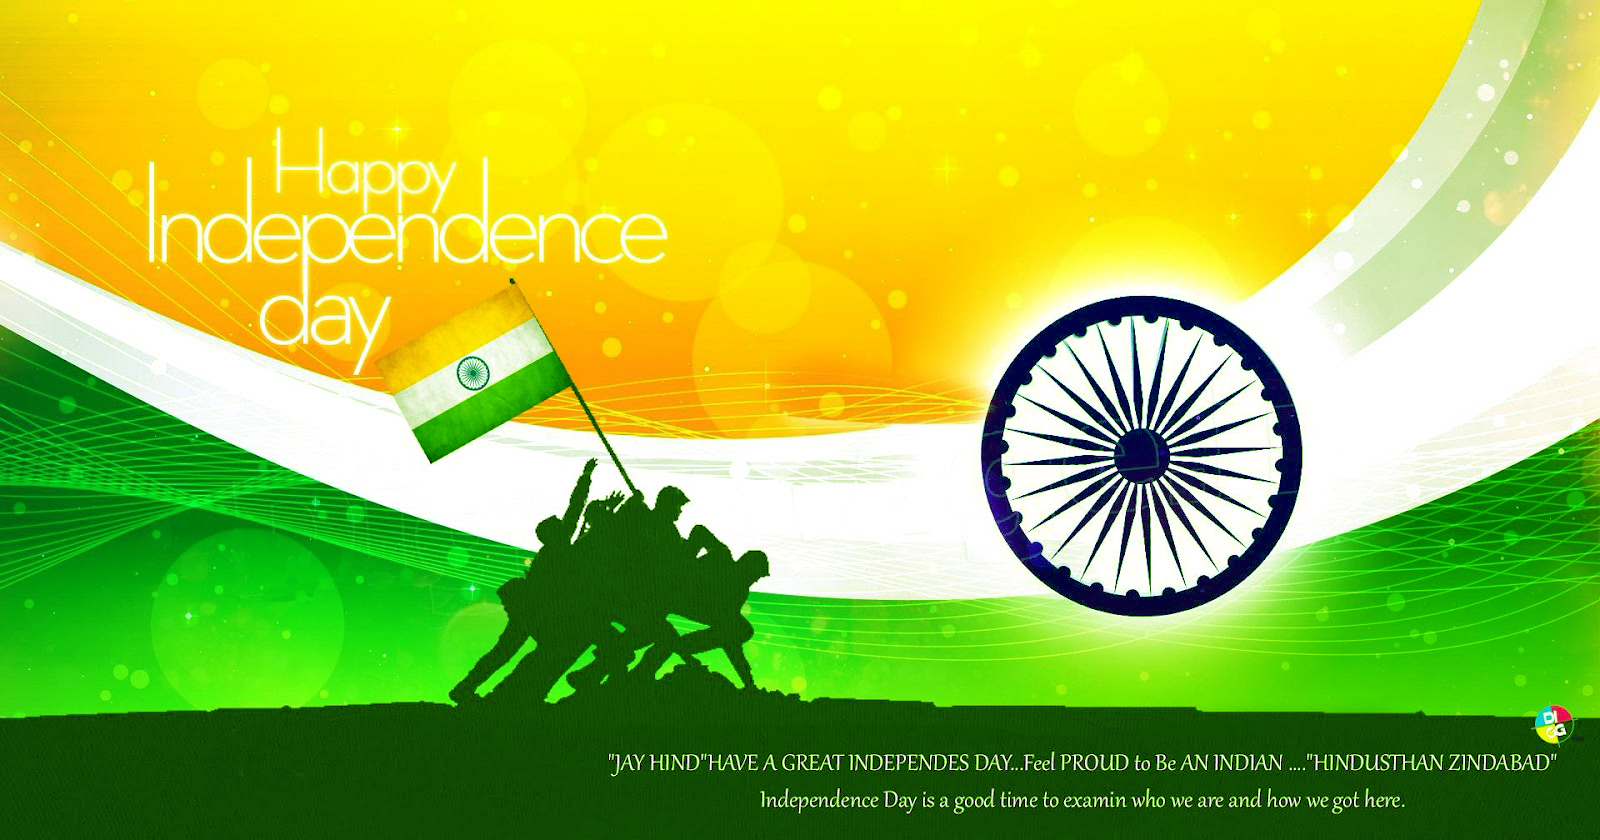 India Independence Day Wallpaper Free Download